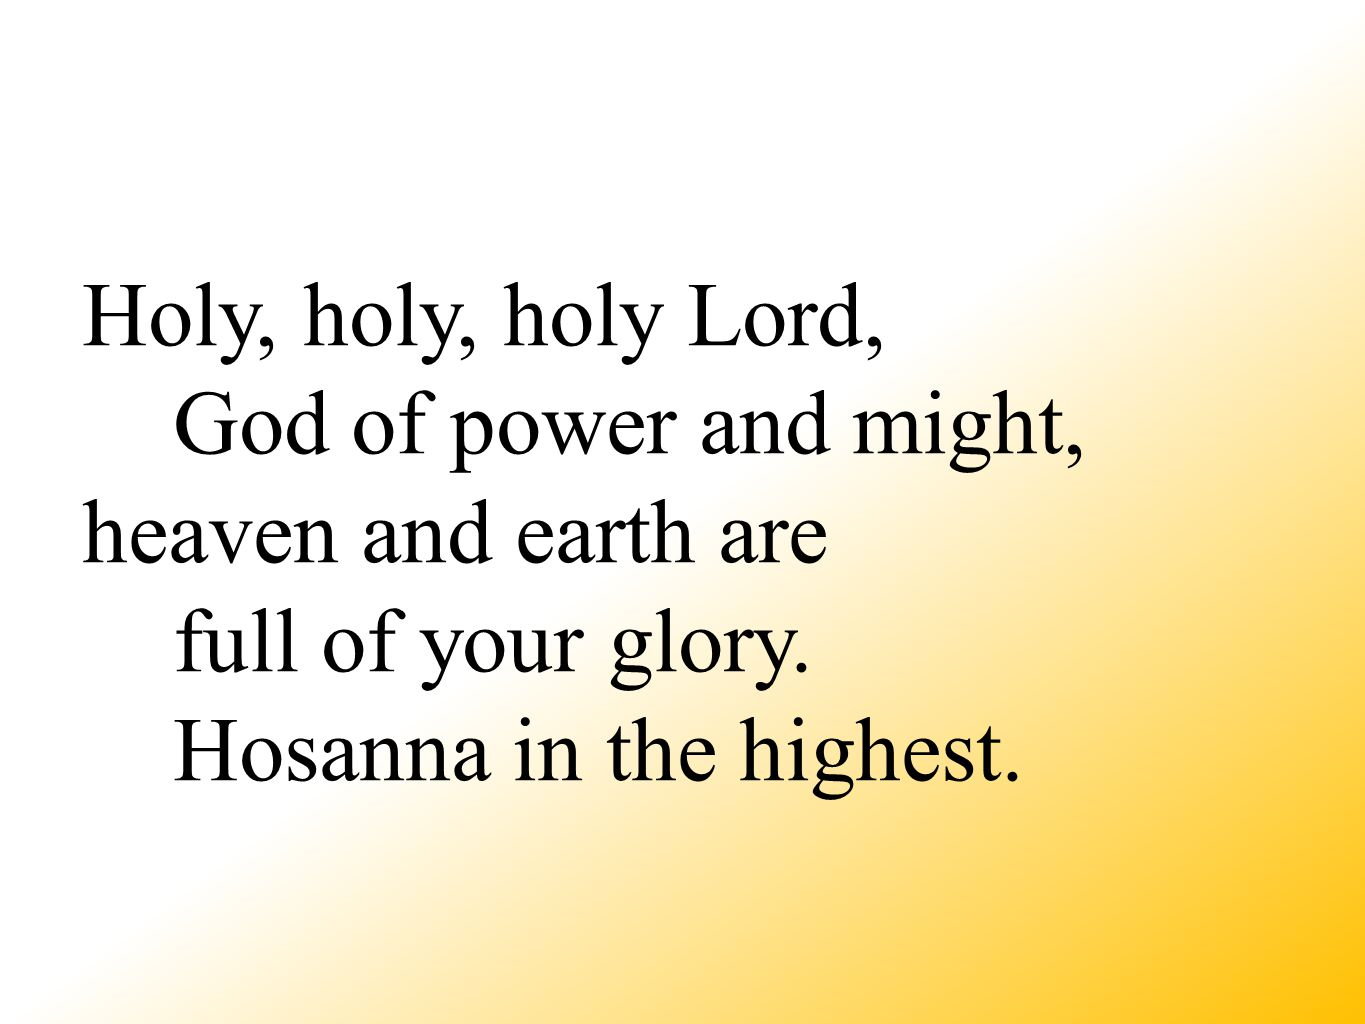 Holy, holy, holy Lord, God of power and might, heaven and earth are full of your glory.